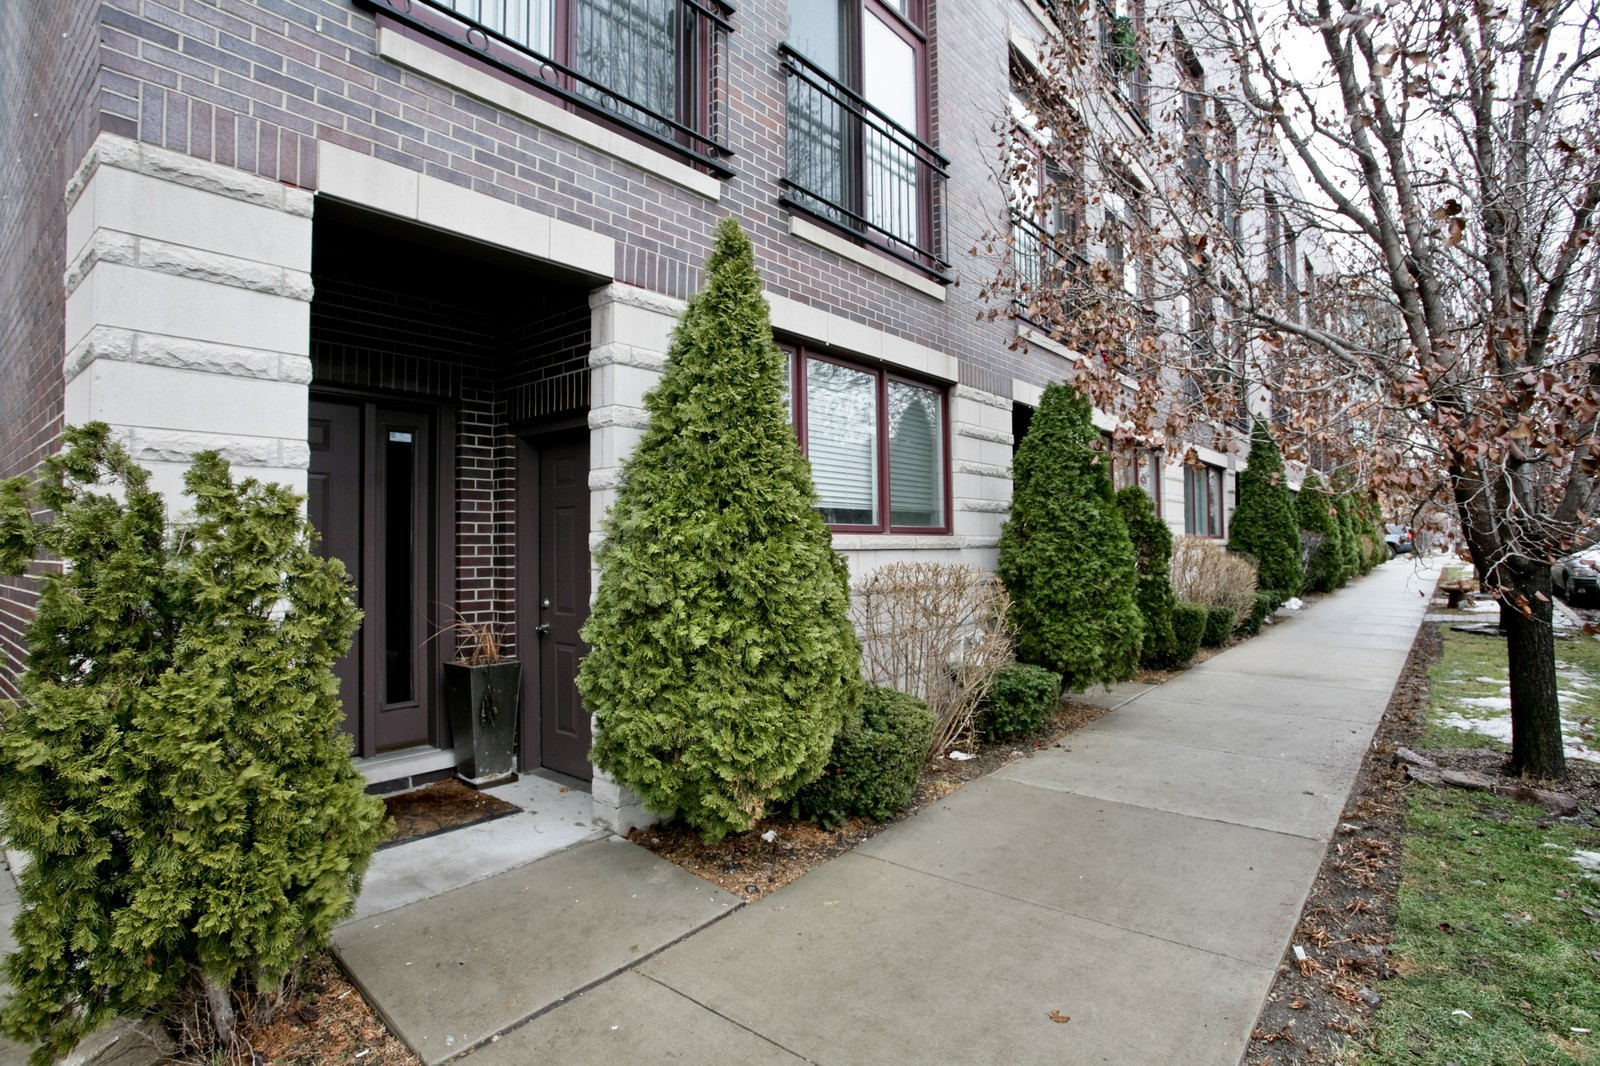 Real Estate Photography - 942 W Hubbard, Chicago, IL, 60622 - Front View